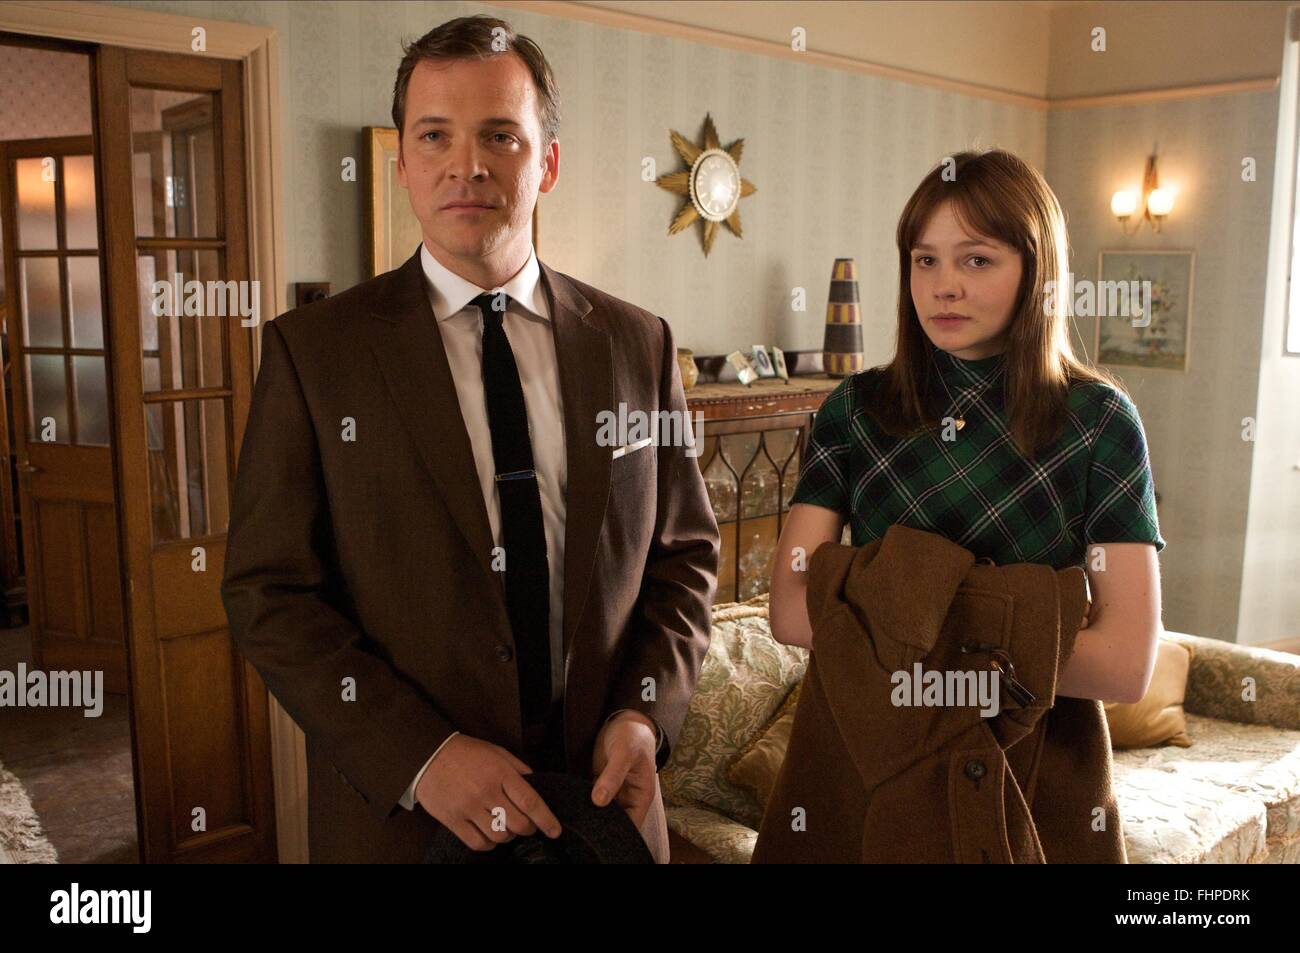 PETER SARSGAARD & CAREY MULLIGAN AN EDUCATION (2009) - Stock Image